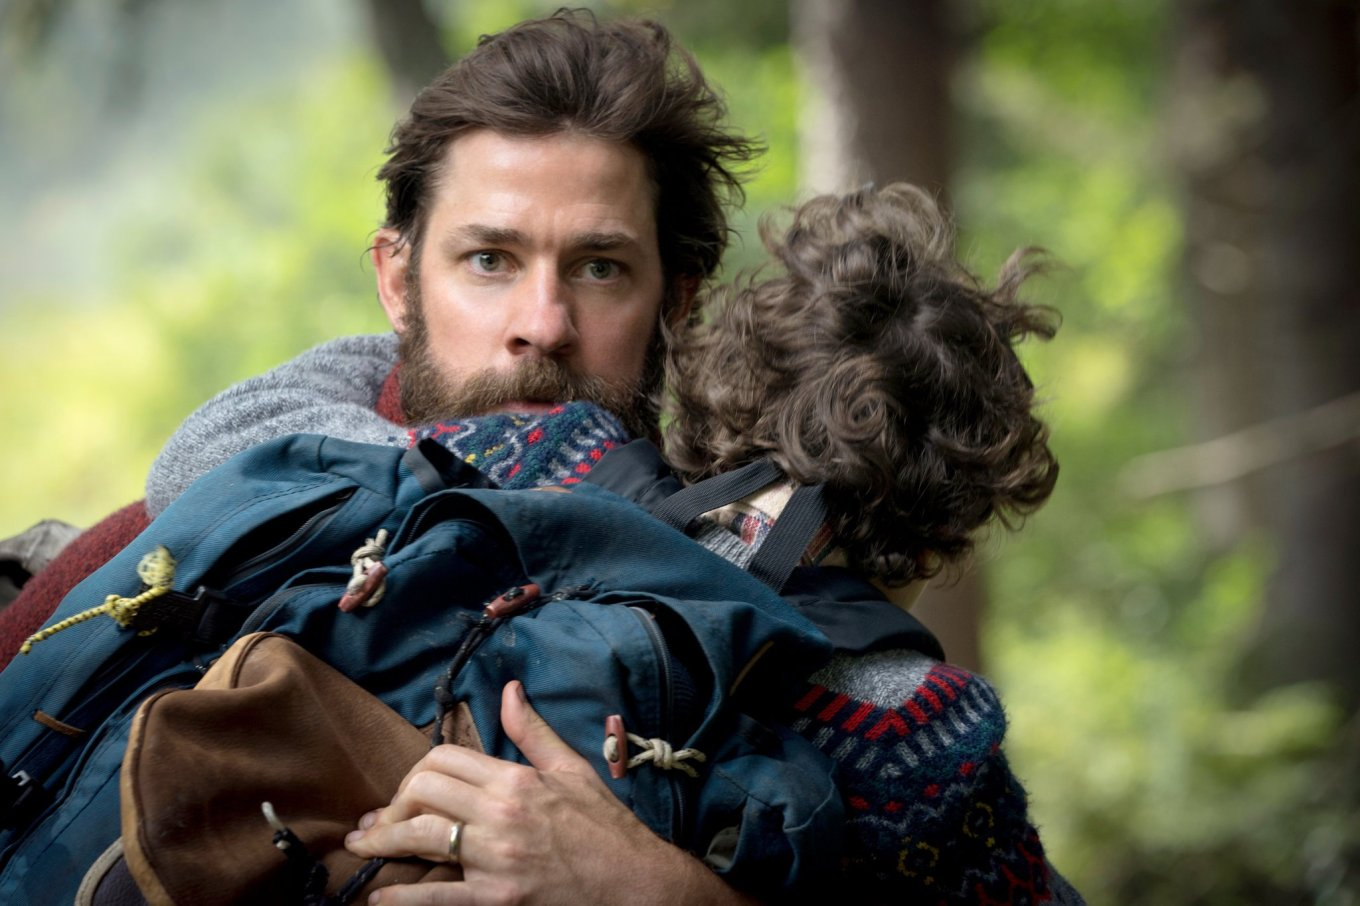 REVIEW: Don't miss the loud pro-life message in 'A Quiet Place'